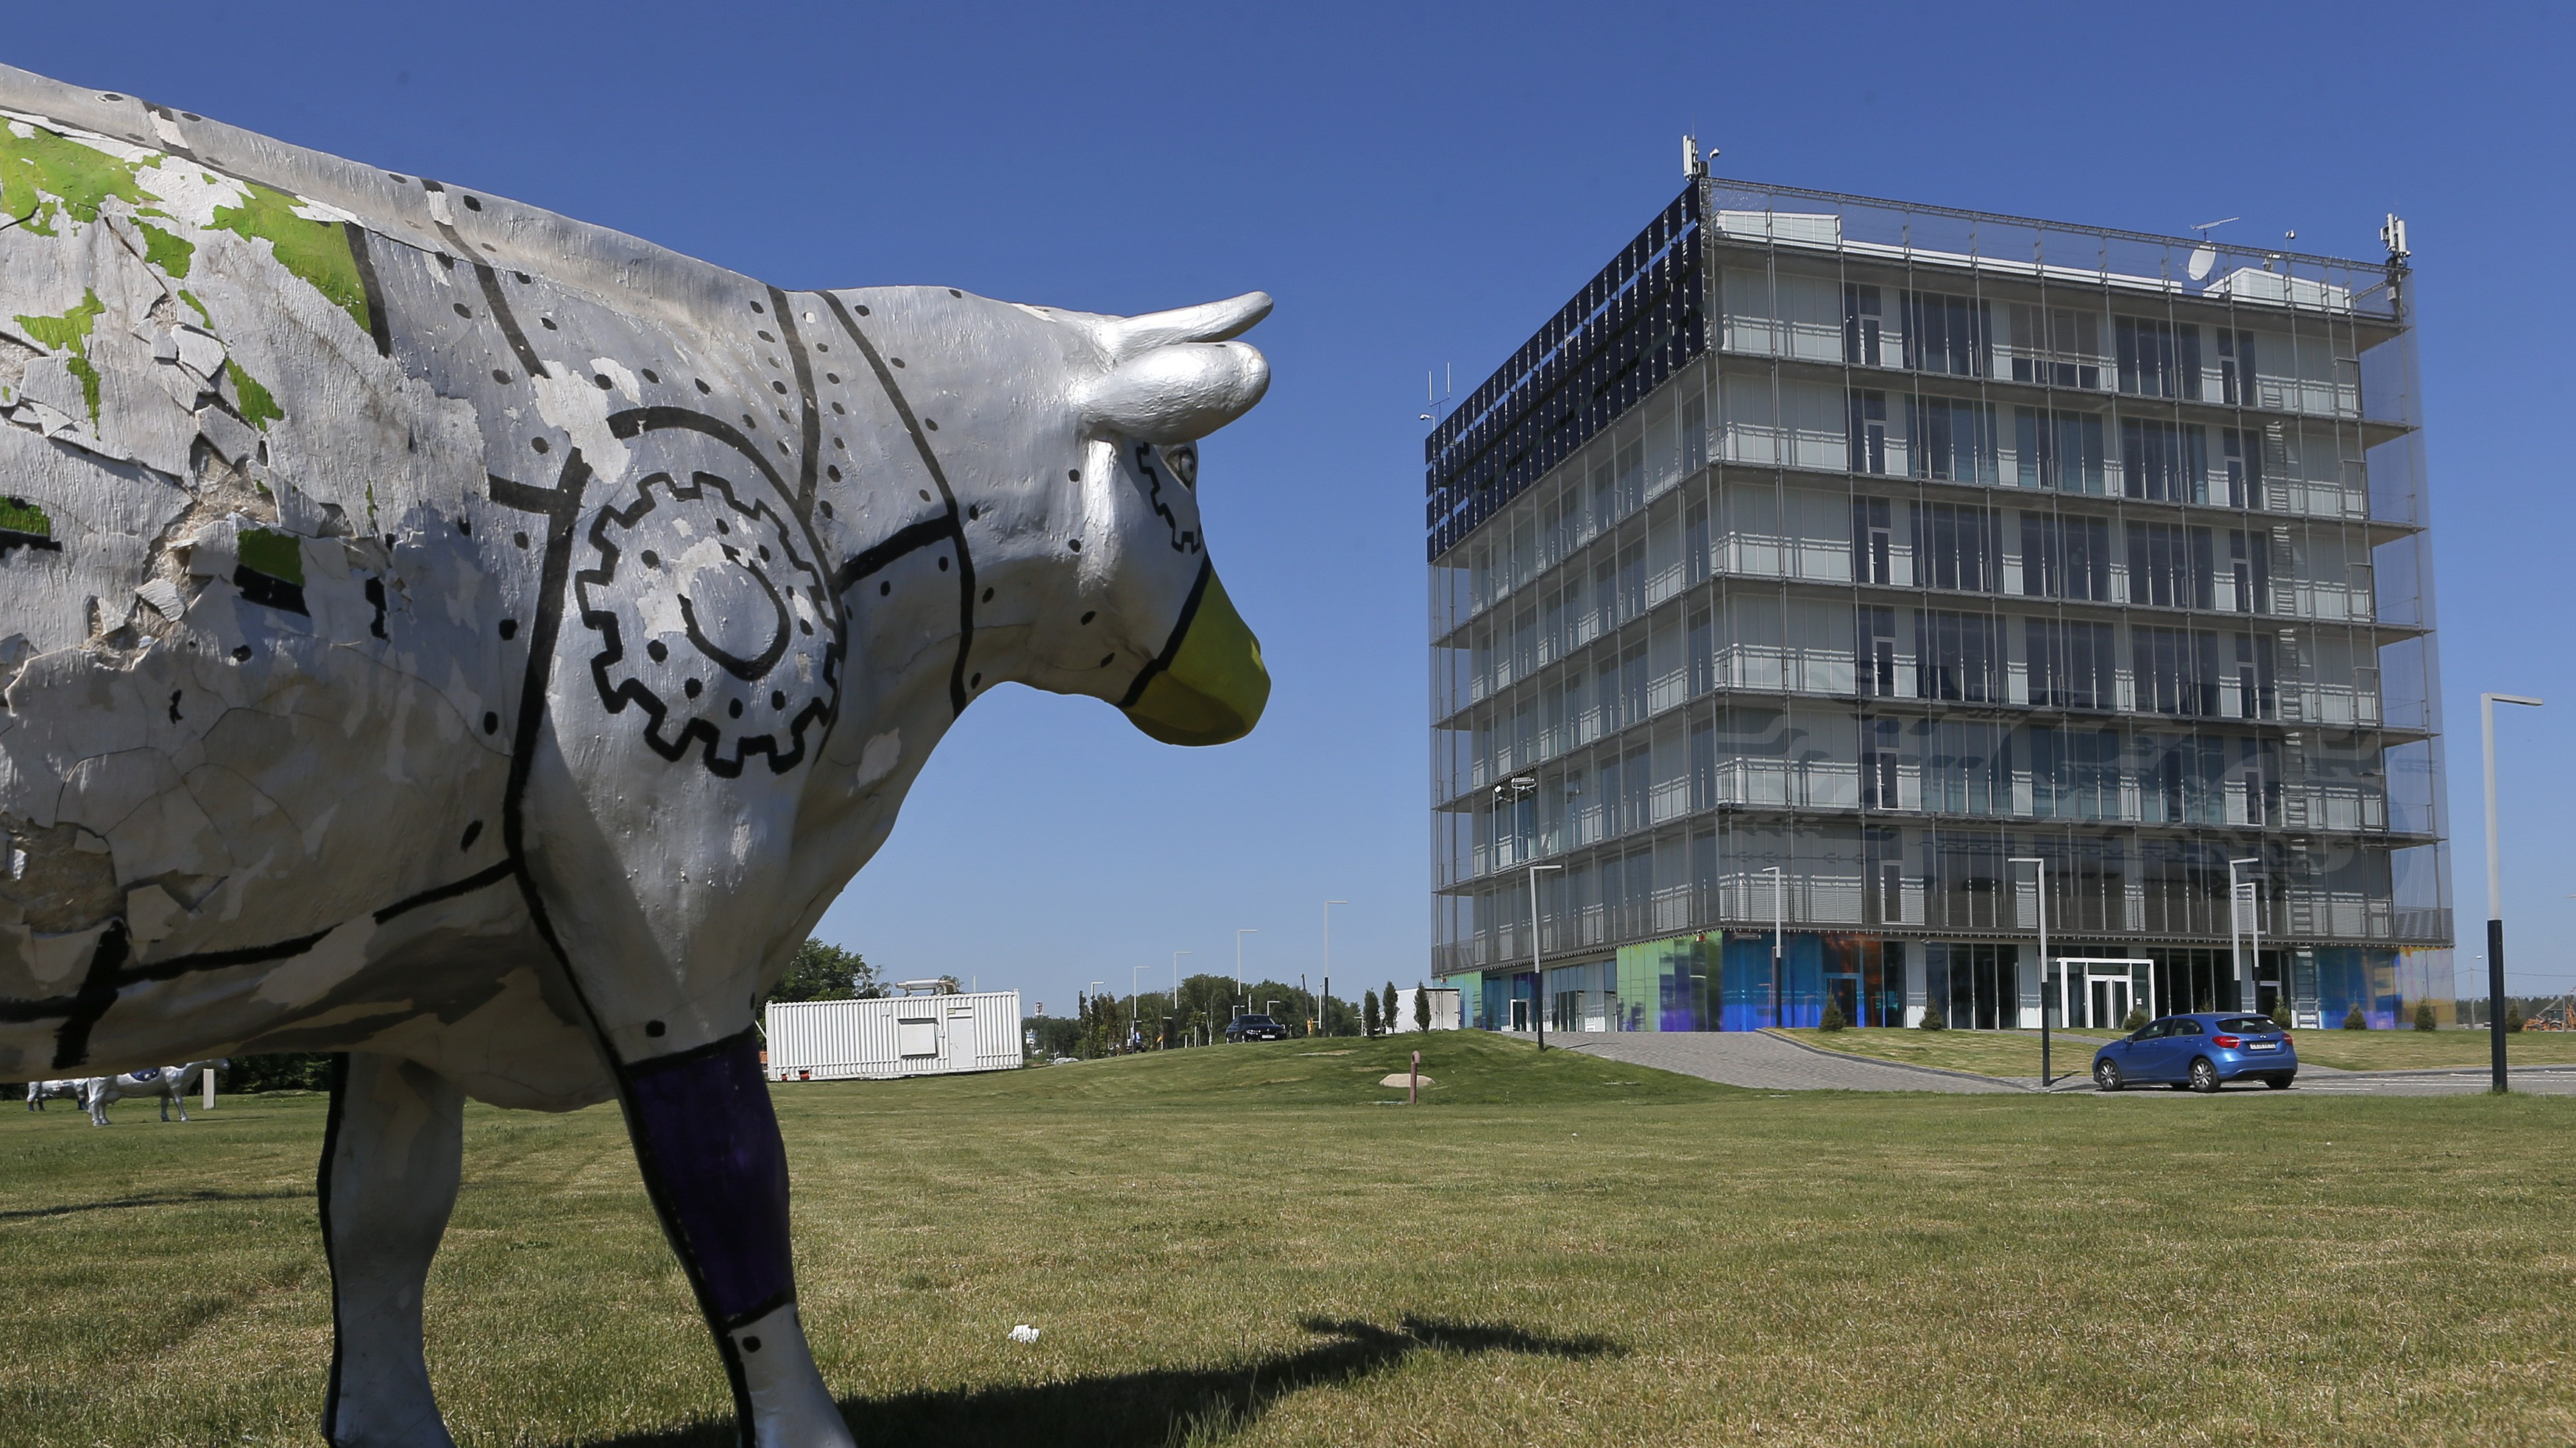 An exterior view shows the Skolkovo Hypercube at the Skolkovo Innovation Centre, with a sculpture of a cow seen in the foreground, on the outskirts of Moscow